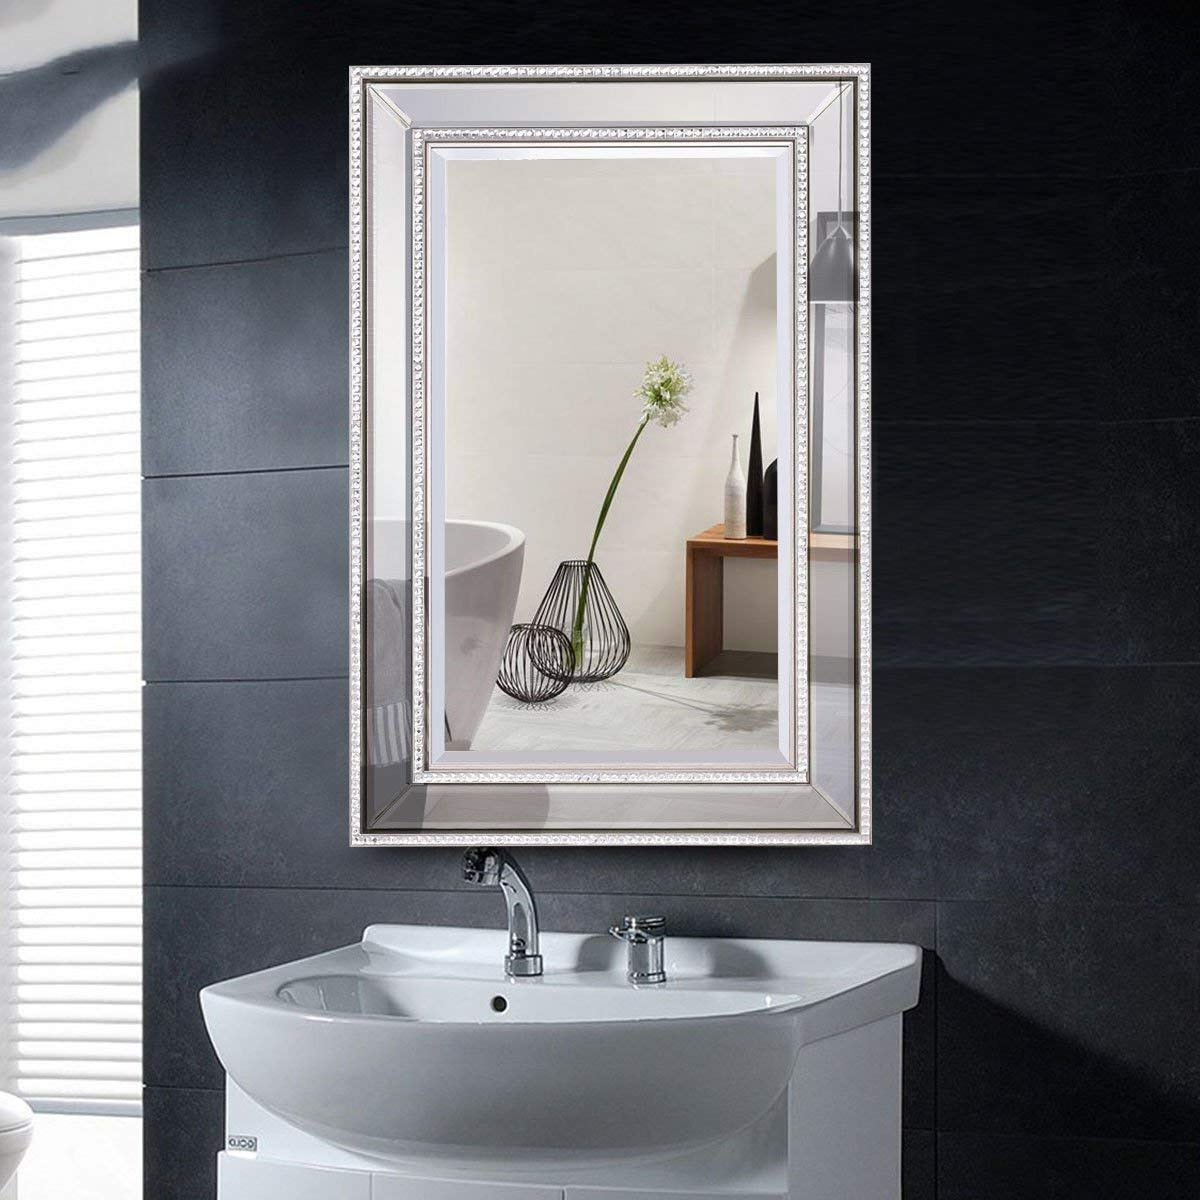 "Famous Bathroom Vanity Wall Mirrors Within Tangkula 24"" X 36"" Wall Mirror Wall Mounted Wood Frame Rectangular Bathroom Vanity Mirror (View 6 of 20)"